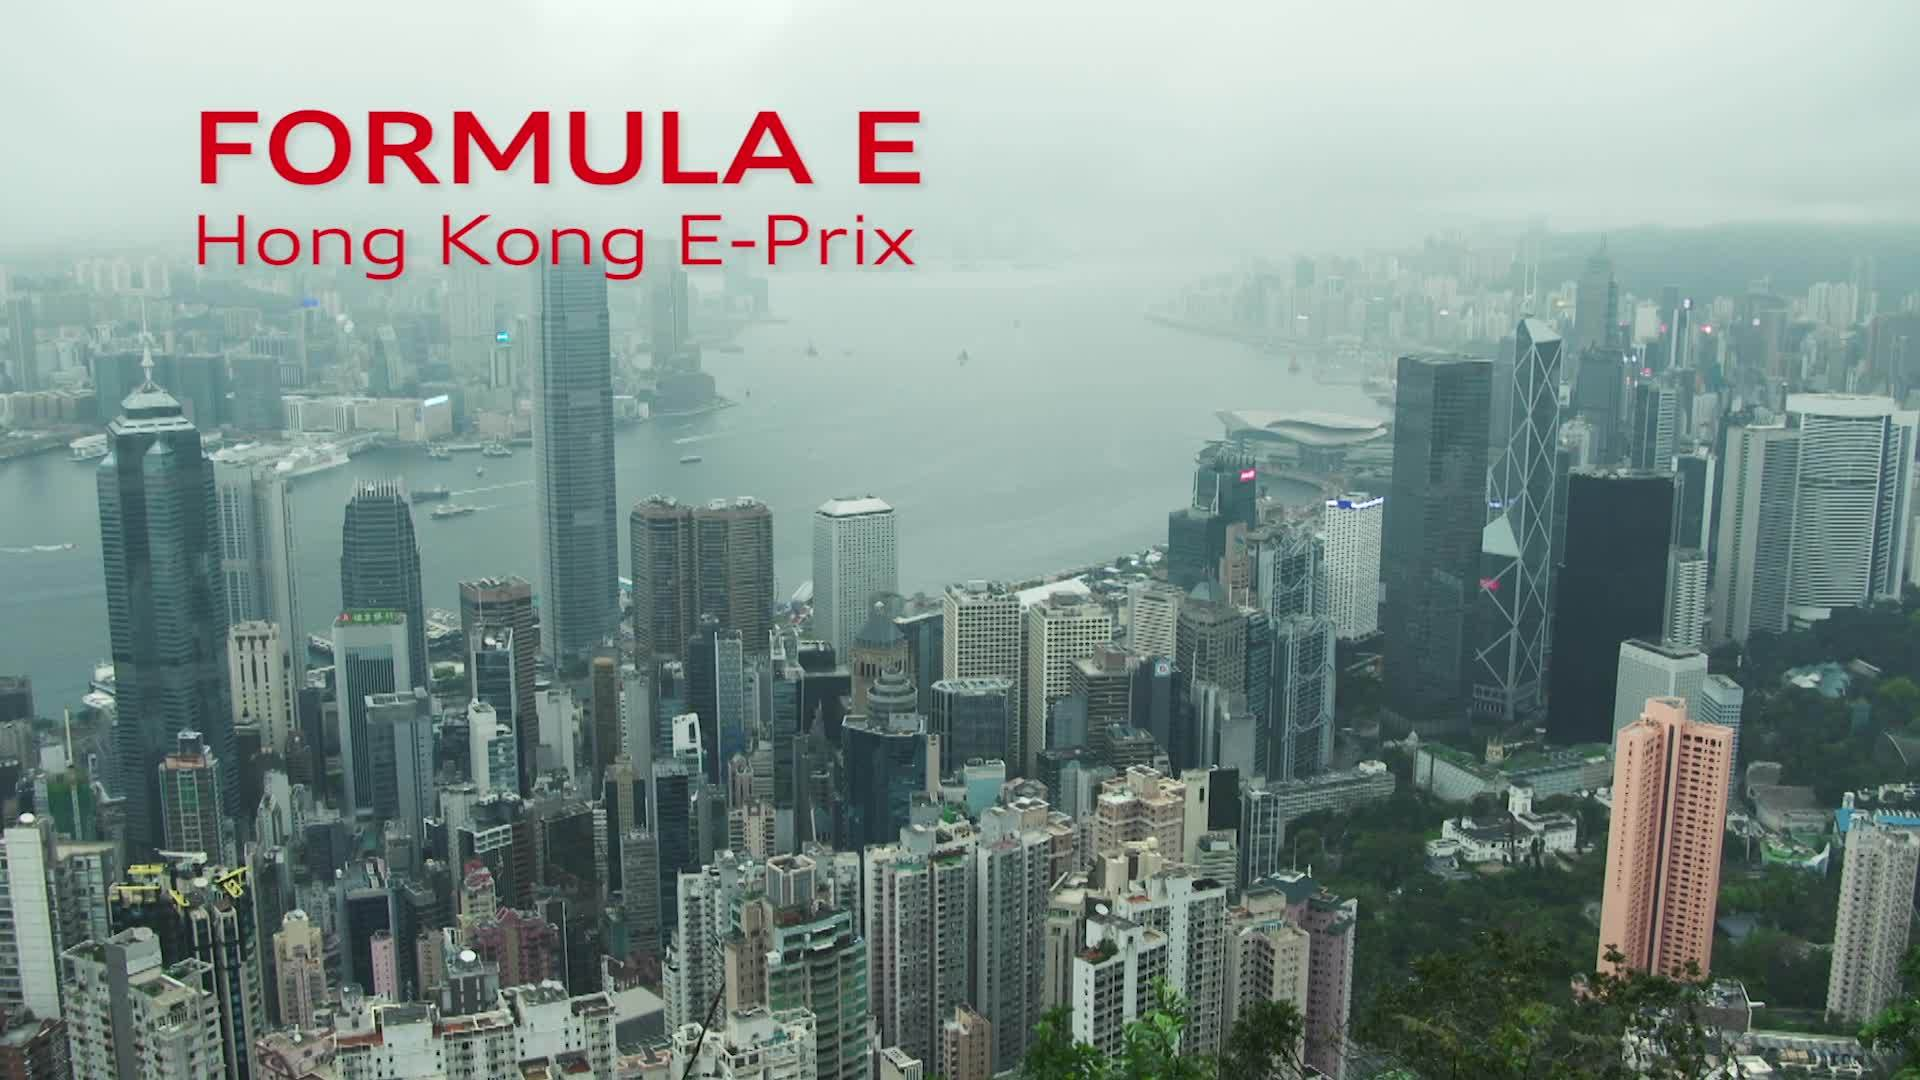 Welcome to Hong Kong: The 50th Formula E race